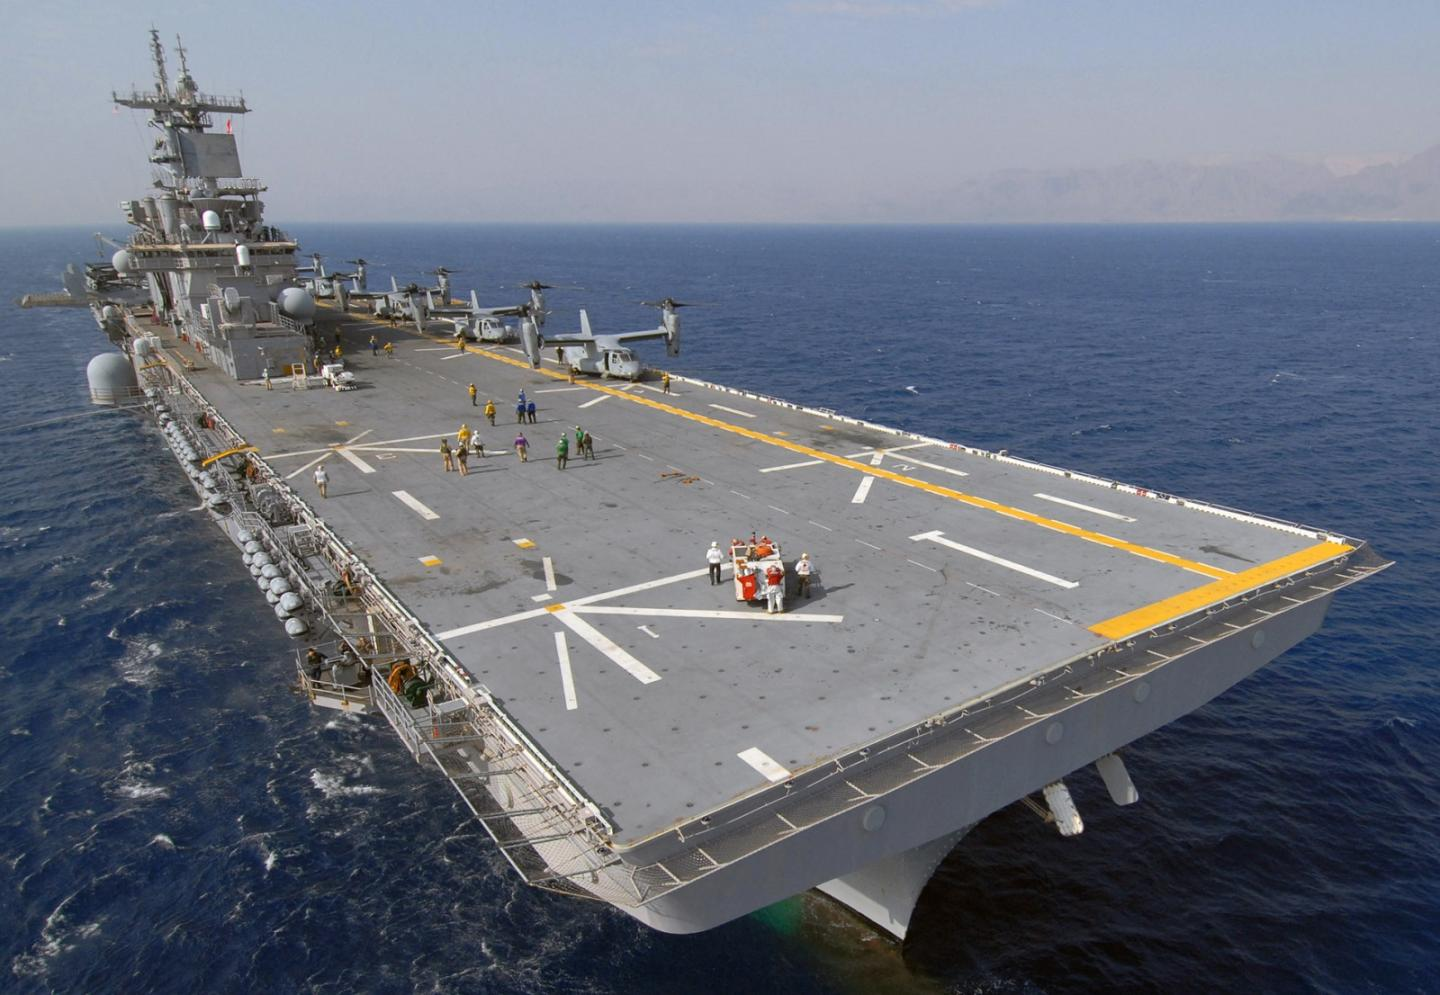 The U.S. Marines Might Be Souring on Amphibious Assault Ships. Heres Why